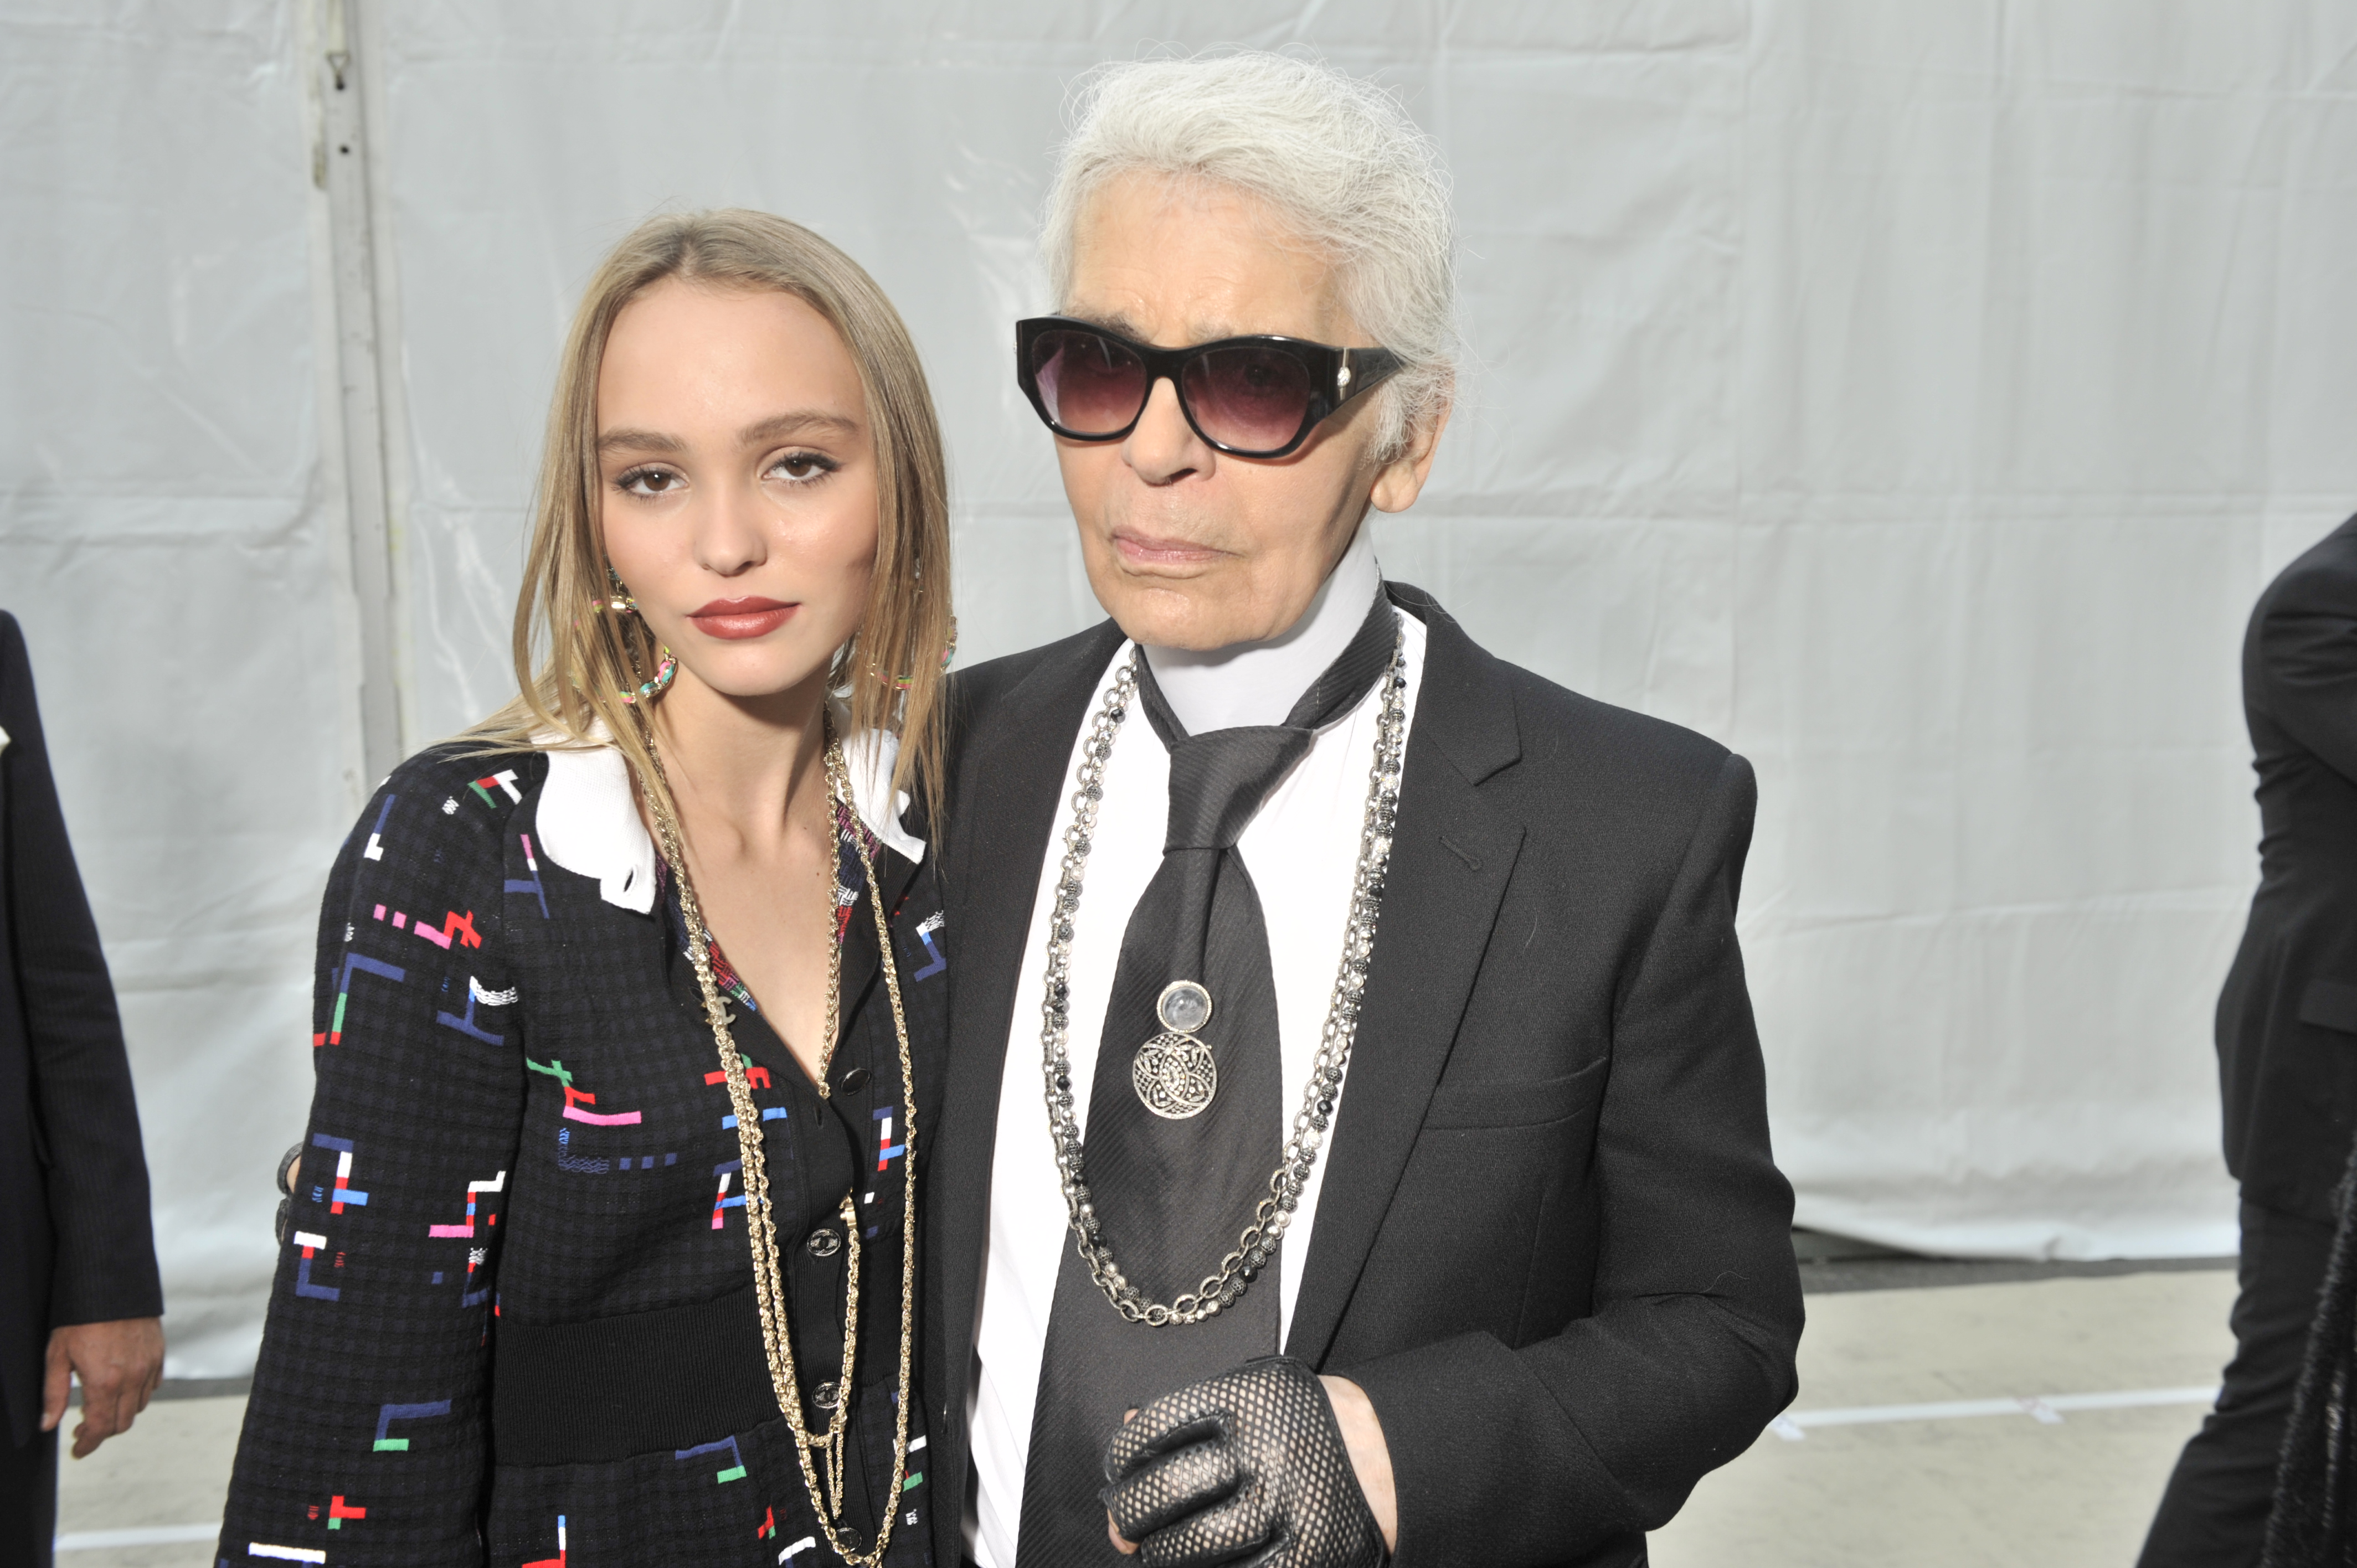 Lily-Rose Depp and Karl Lagerfeld backstage at chanel ss17